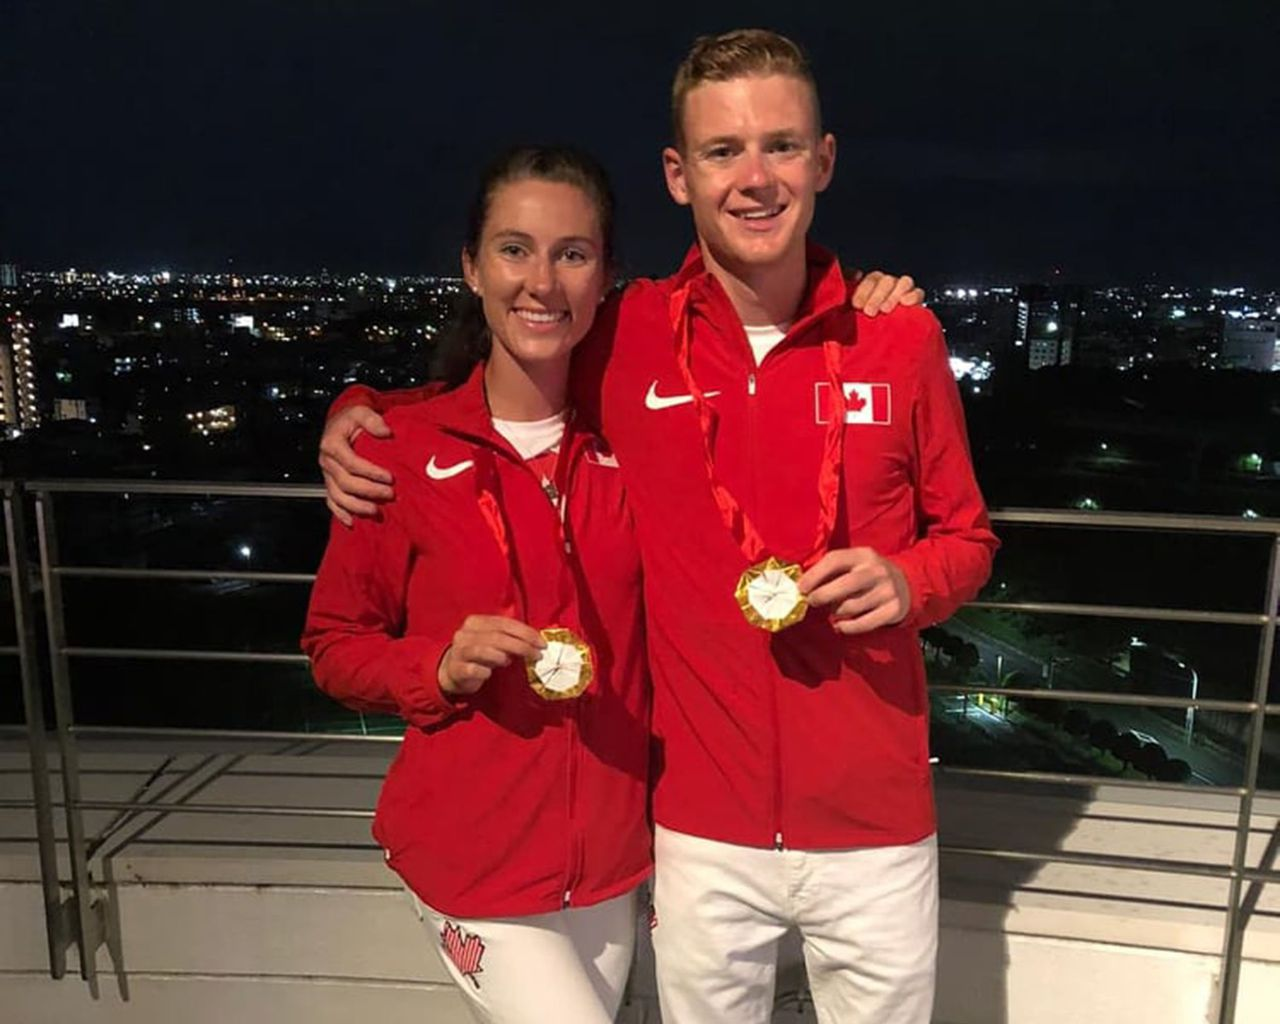 UBC Alumni Natalia Hawthrone and John Gay celebrate the Opening Ceremonies of the 2020 Olympic Games